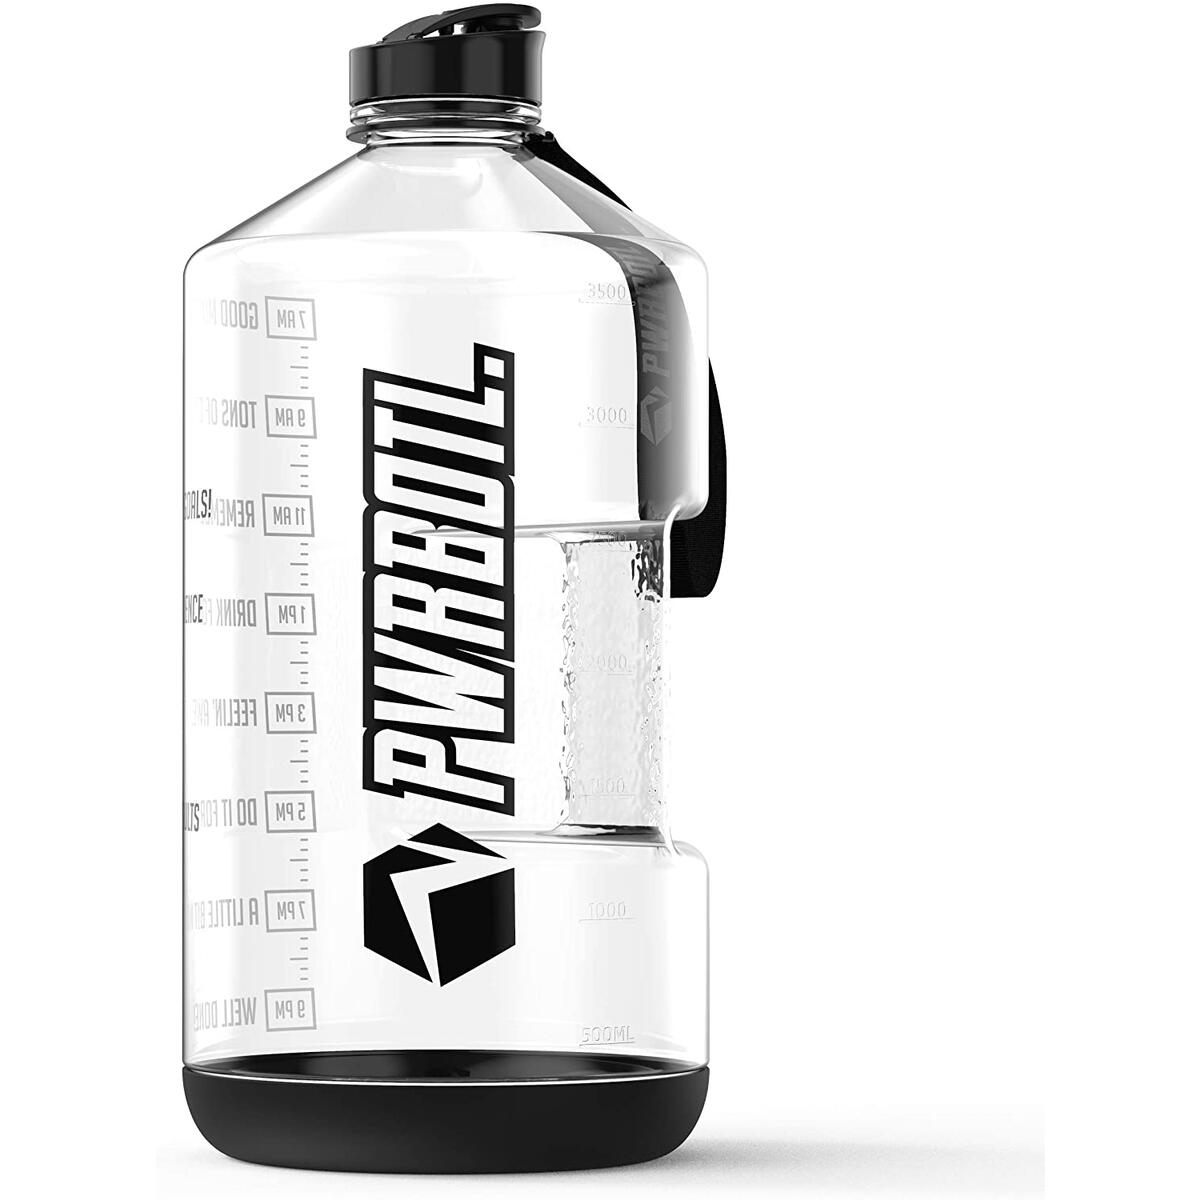 PWRBOTL 1 Gallon Water Bottle with Time Marker - Drop Resistant - Large BPA Free Jug Water Gallon Bottle/Gallon Water Jug Helps You to Drink More Water! 128 oz Leak Proof Motivational Water Bottle